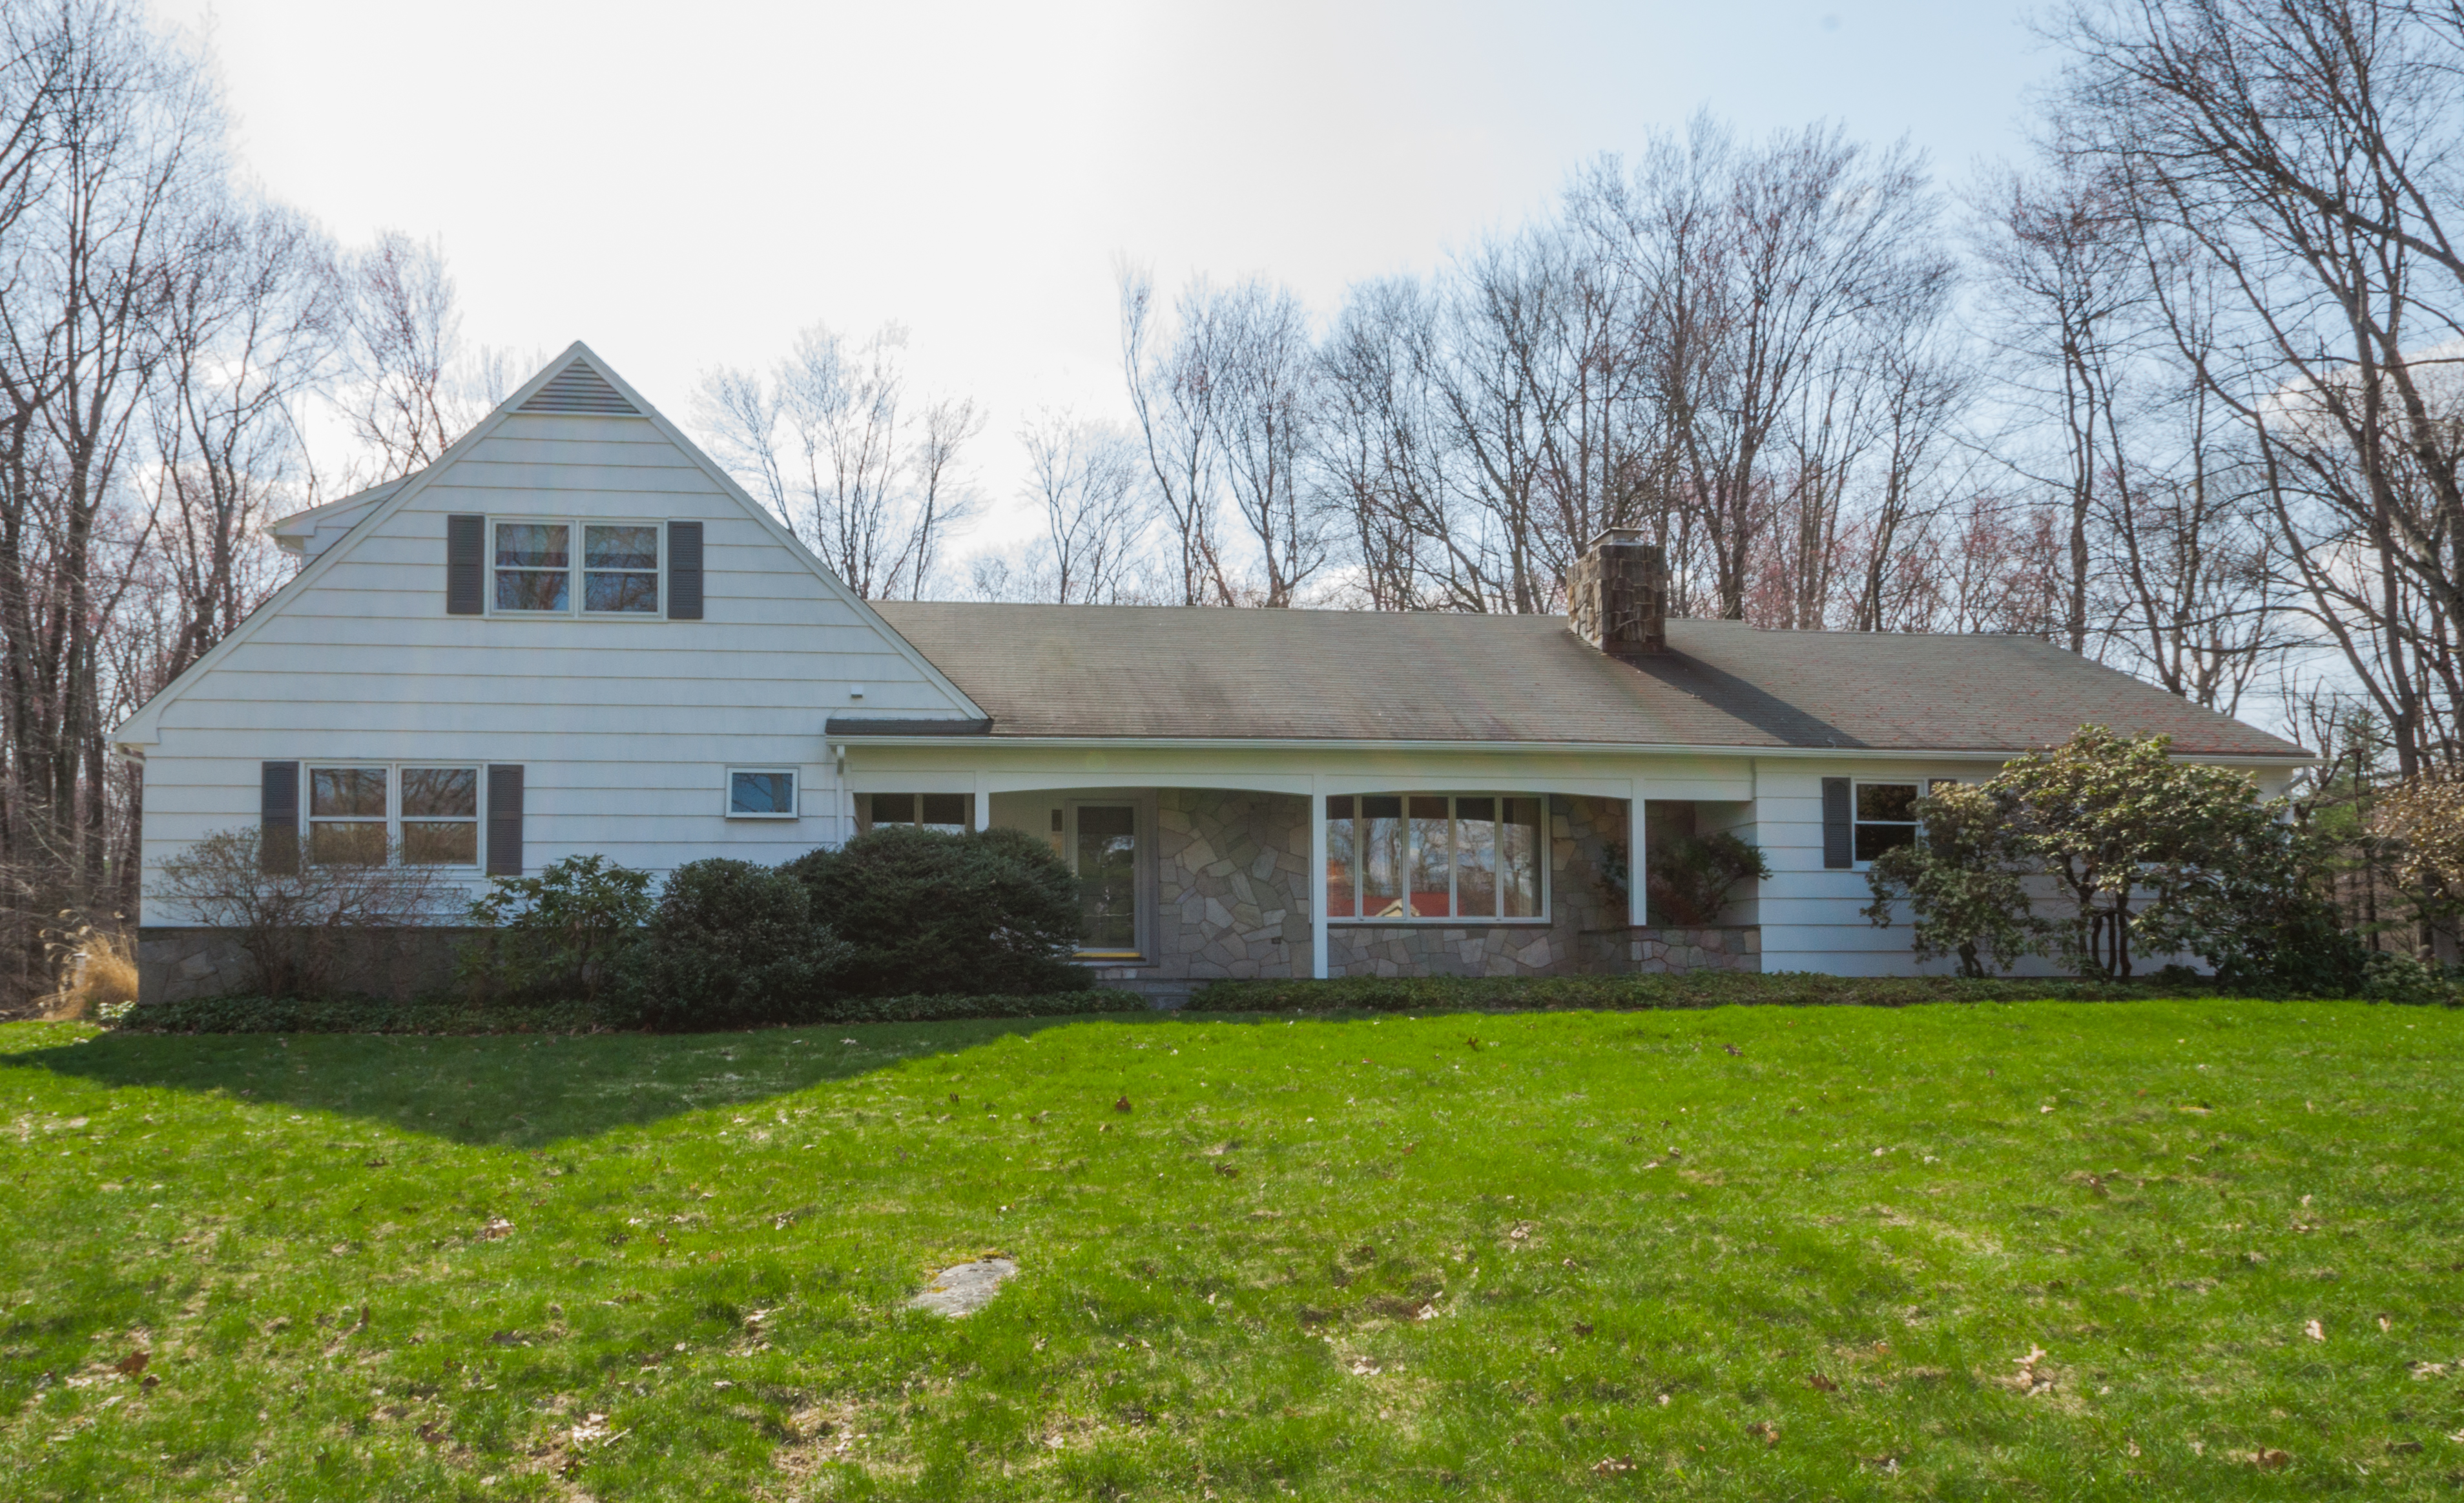 Single Family Home for Sale at Original Owner 3 Lakecrest Drive Danbury, Connecticut 06811 United States